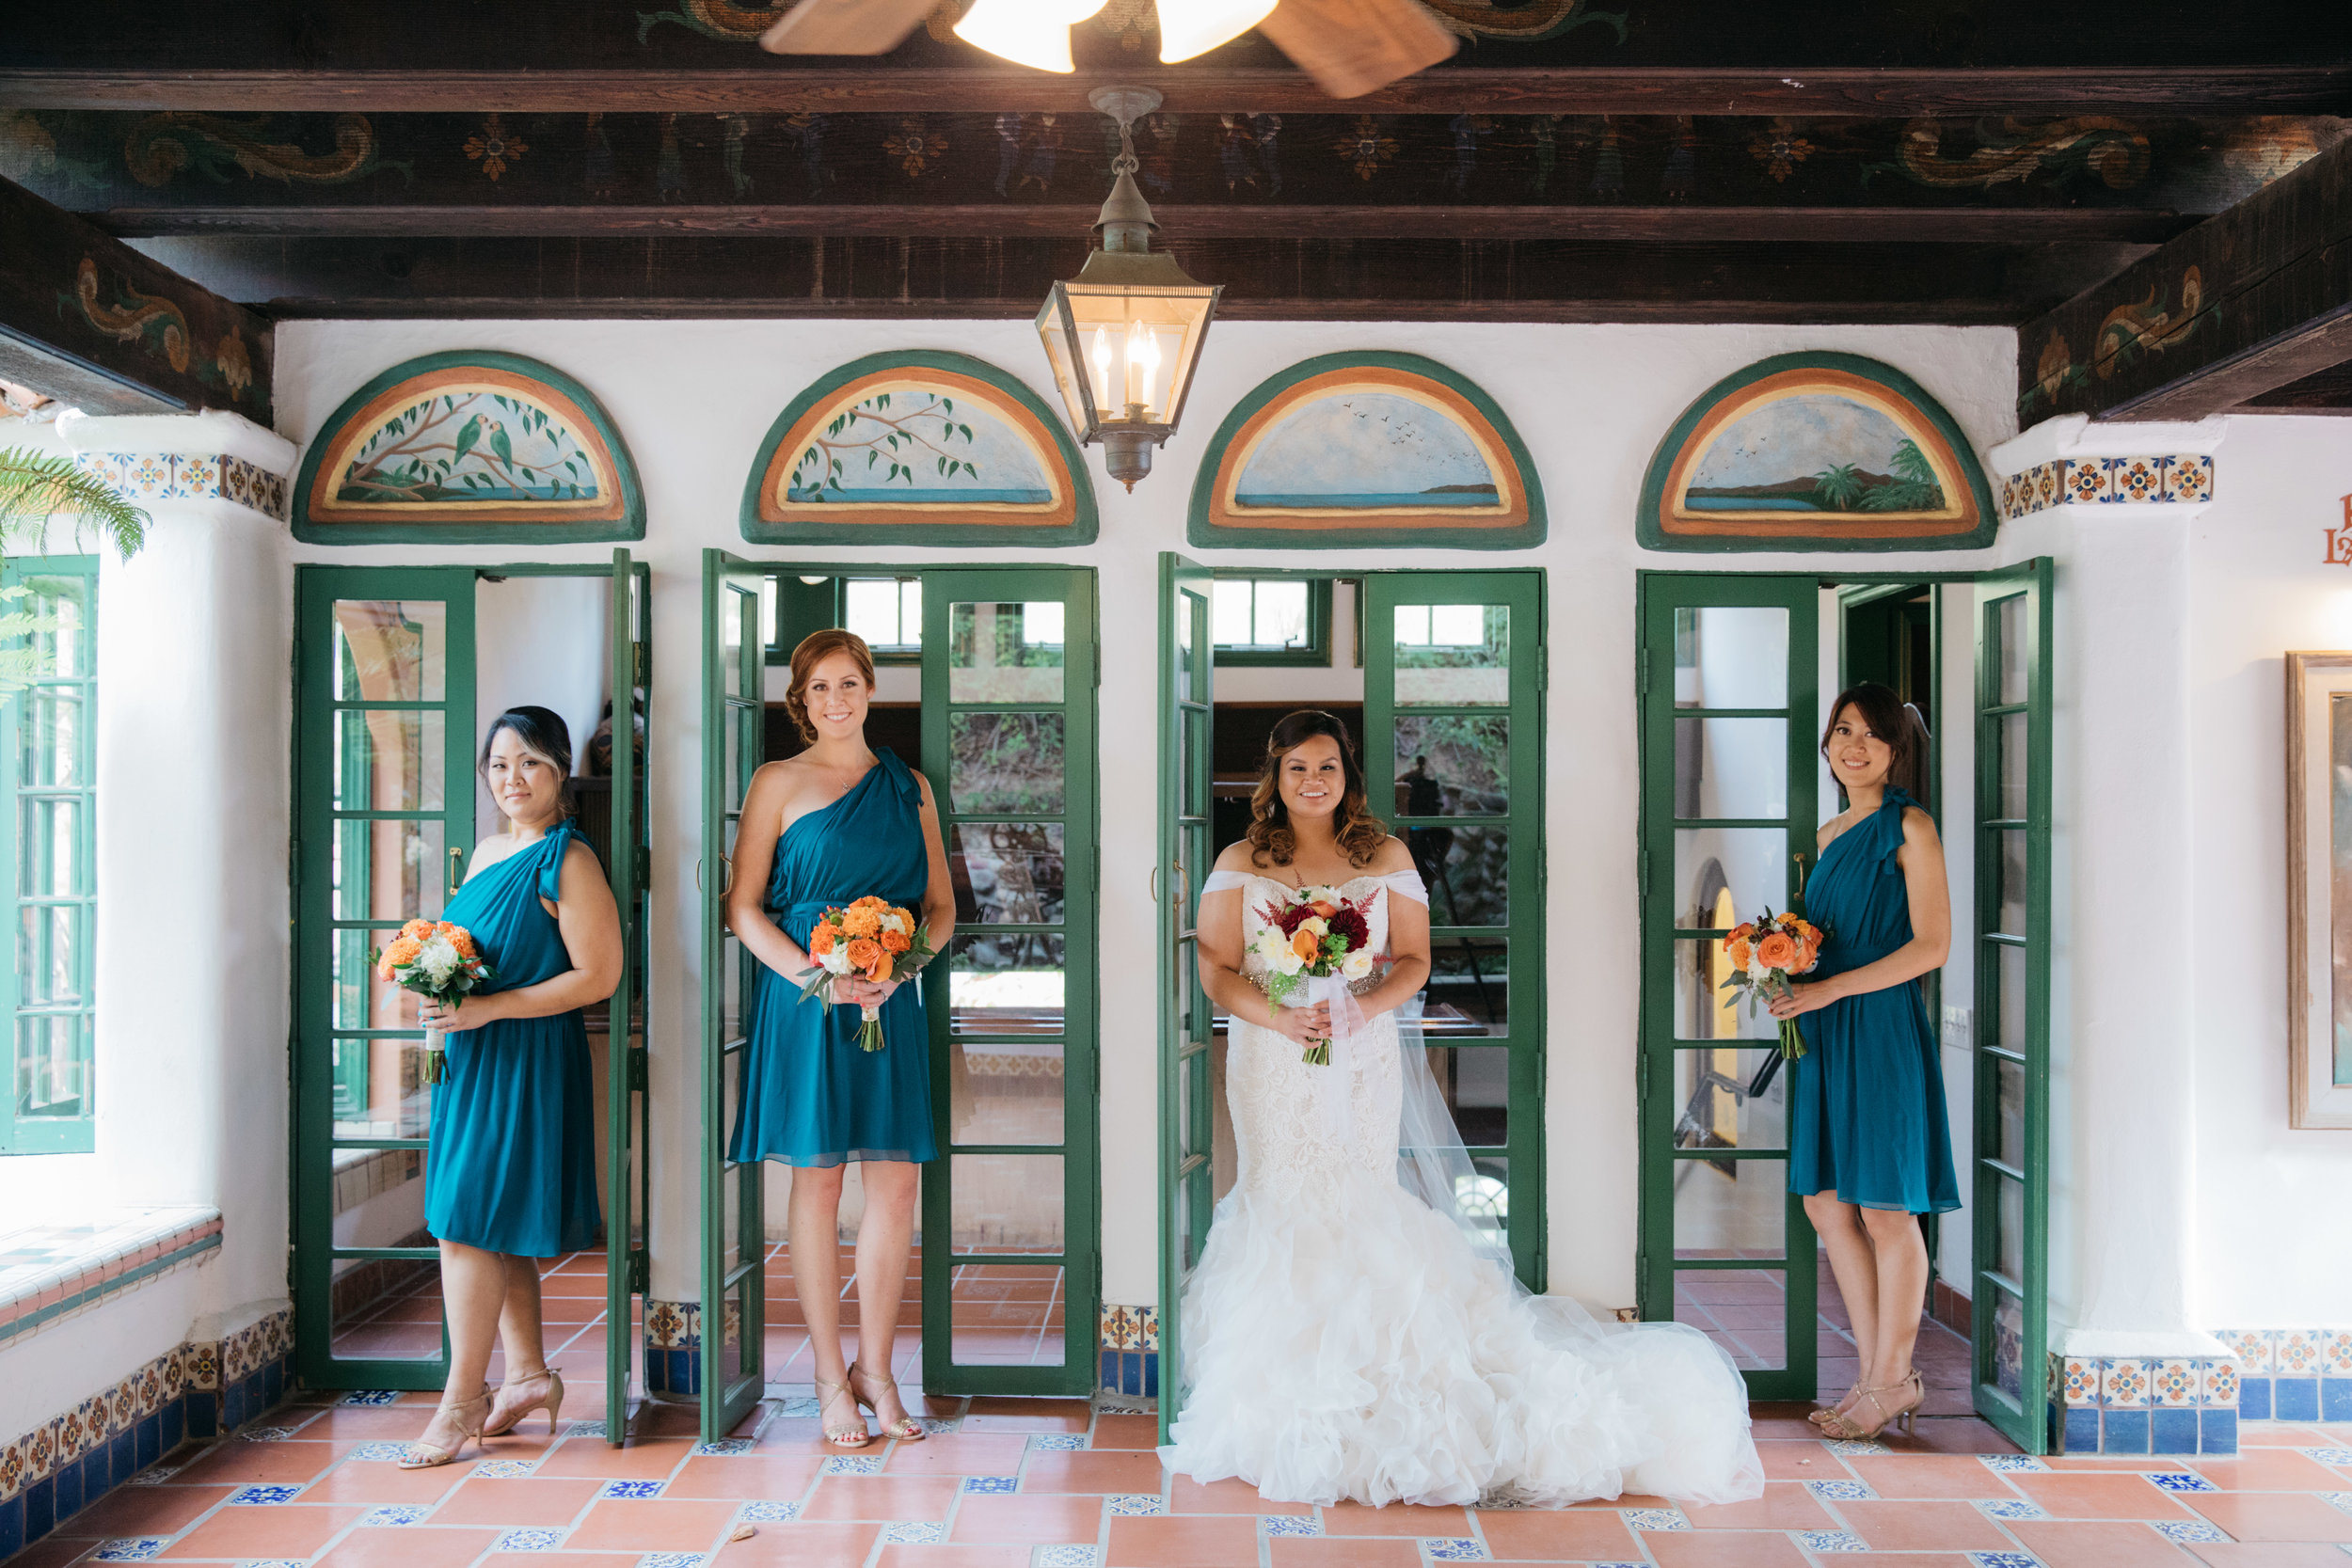 rancho-las-lomas-wedding-planner-best-wedding-planner-in-southern-california29.jpg